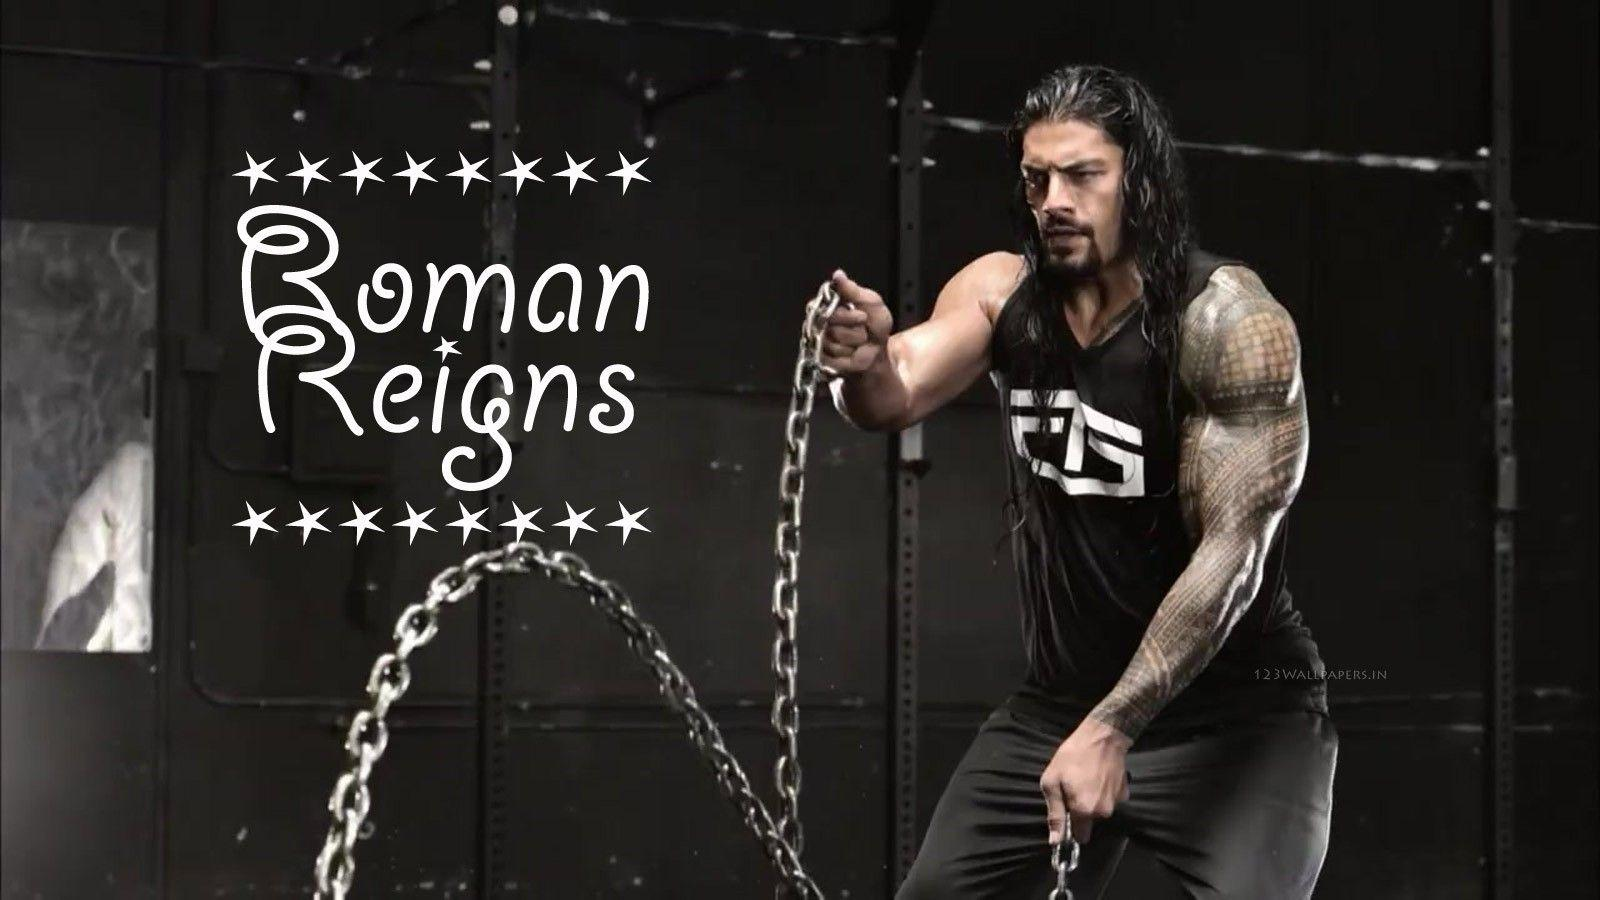 WWE Roman Reigns American professional wrestler wallpapers 2016 hd